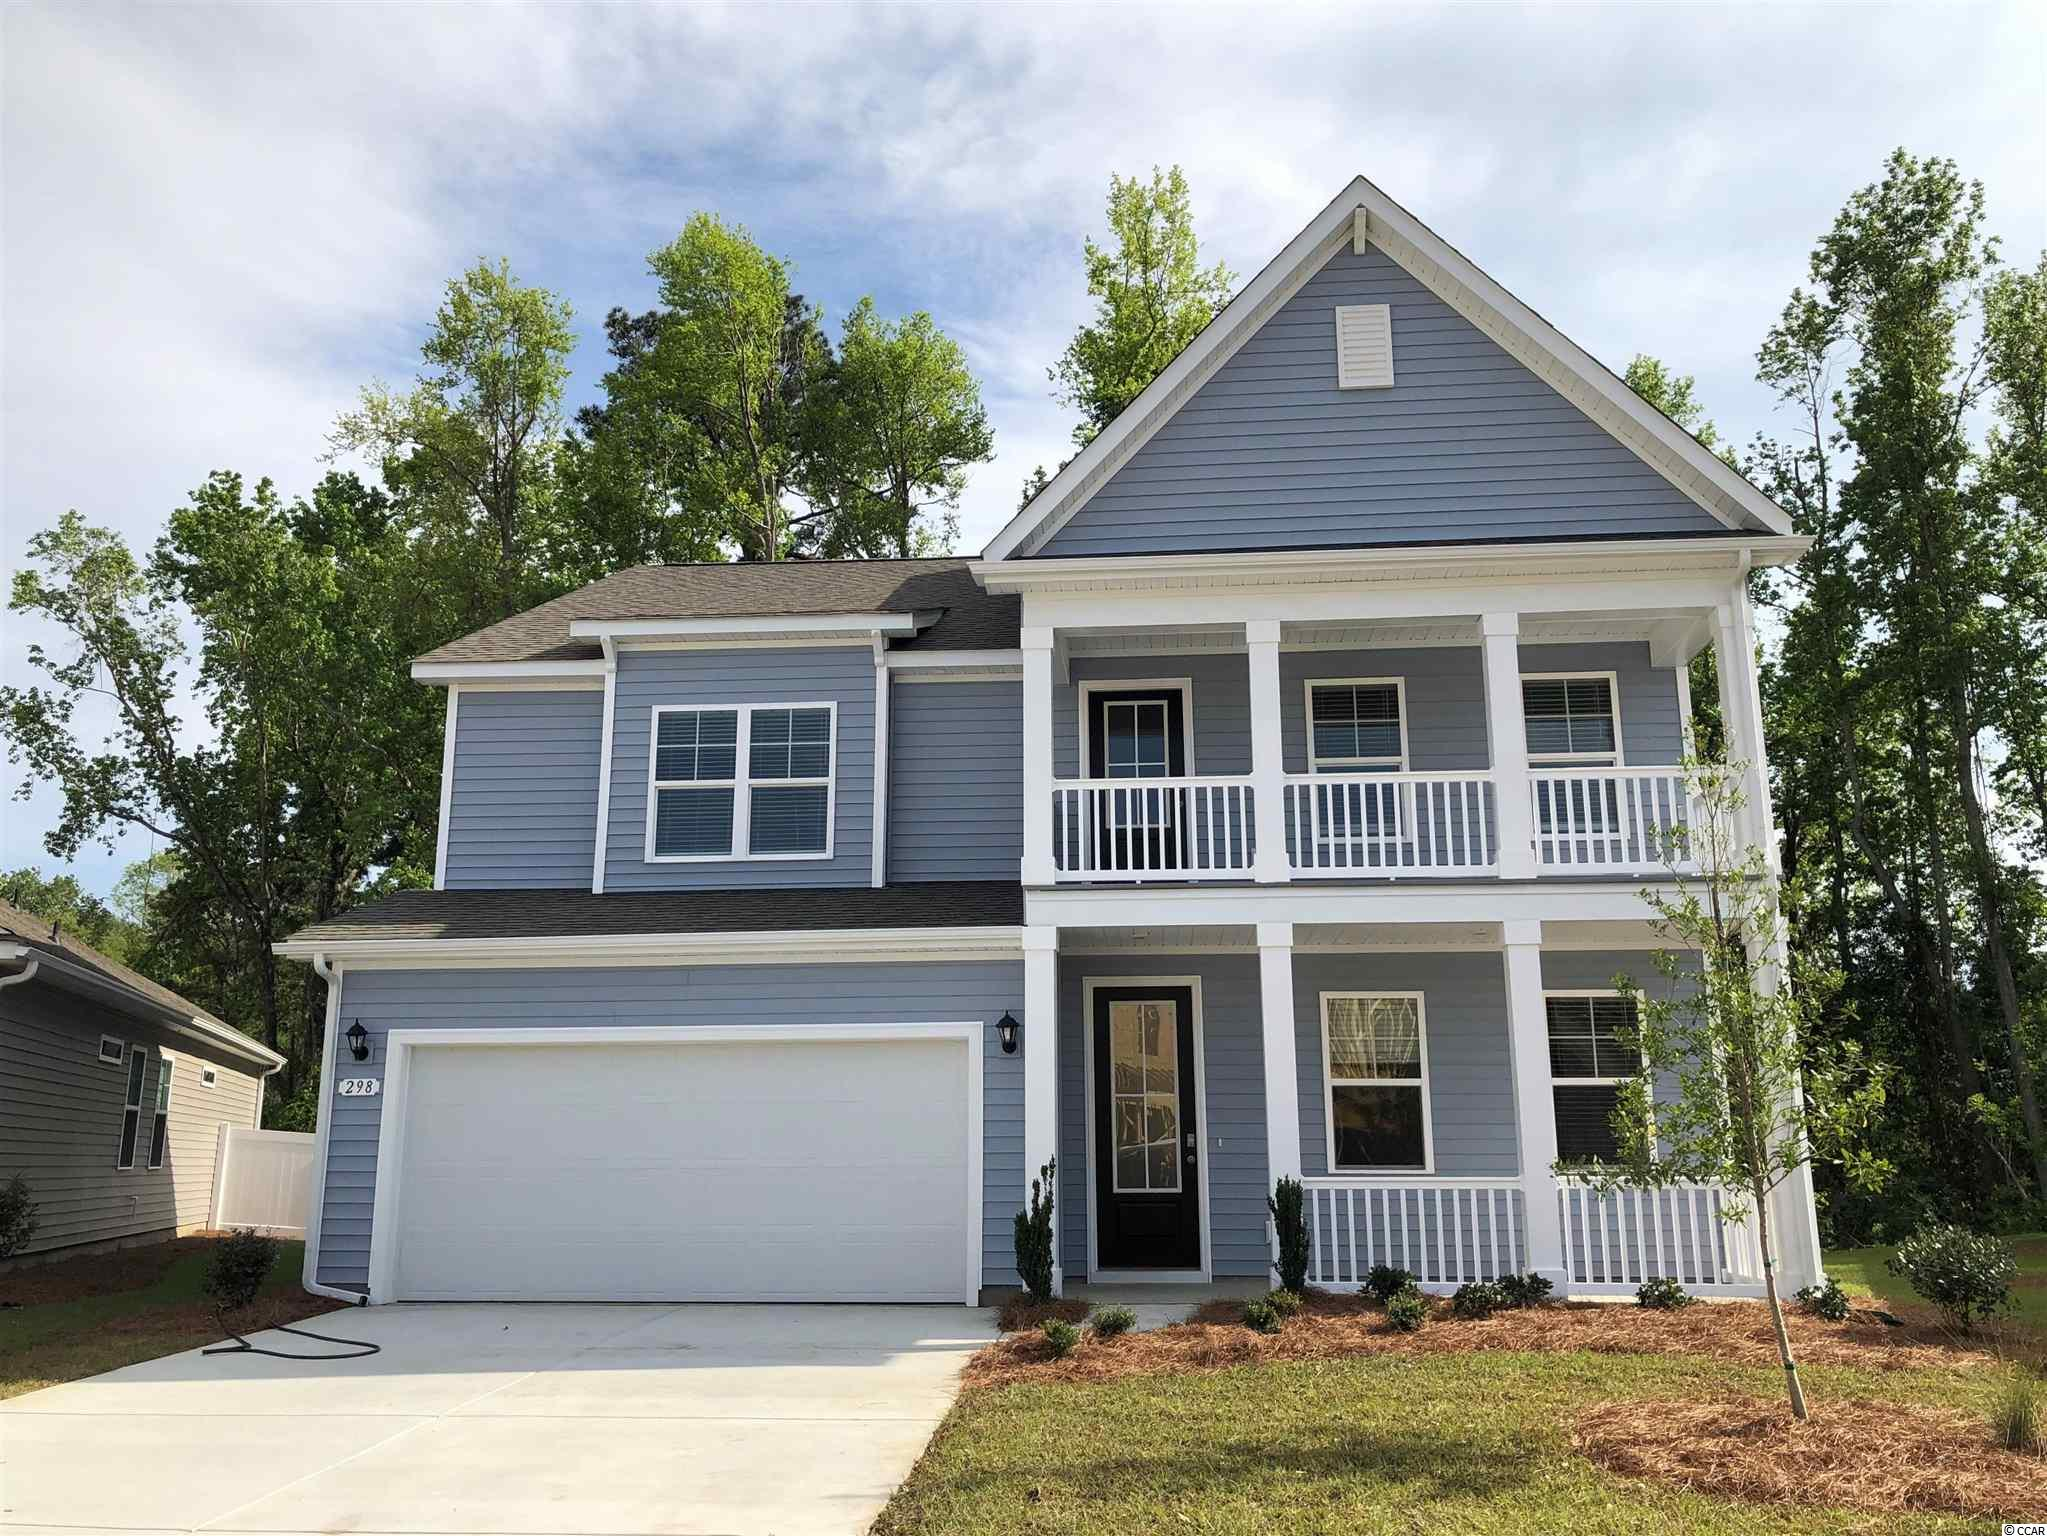 New phase now selling! Hidden Brooke is a beautiful community with an amenity that includes a pool with large deck area, clubhouse, and exercise room. Minutes away from Highway 31 which provides quick and easy access to all of the Grand Strand's offerings: dining, entertainment, shopping, and golf! Tranquil setting just a short drive to the beach. This popular Harbor Oak plan brings functionality and style together! Incredible curb appeal is an understatement given the stacked front porches and tall entry door with glass. Once inside, laminate wood floors flow throughout the main living areas creating an inviting space and numerous windows bring in fantastic natural light. Off the entry is a spacious flex room with French doors that would make the perfect home office or formal dining room. The large gourmet kitchen boasts modern gray painted cabinetry, quartz countertops, an oversized island, stainless Whirlpool appliances including a gas range, and a beautiful Butler's pantry right across from the walk-in pantry. Spacious bedroom and full bathroom on the first floor is great for guests and the additional sunroom creates even more space to relax or entertain. Upstairs you will find the grand primary bedroom suite with a cozy sitting room, huge walk-in closet, and en suite bath with large separate vanities, linen closet, and tile spa shower! Two additional bedrooms, a hall bathroom with a double vanity, and a great loft space with lots of storage complete the upstairs.  *Photos are of a similar Harbor Oak home.  (Home and community information, including pricing, included features, terms, availability and amenities, are subject to change prior to sale at any time without notice or obligation. Square footages are approximate. Pictures, photographs, colors, features, and sizes are for illustration purposes only and will vary from the homes as built. Equal housing opportunity builder.)